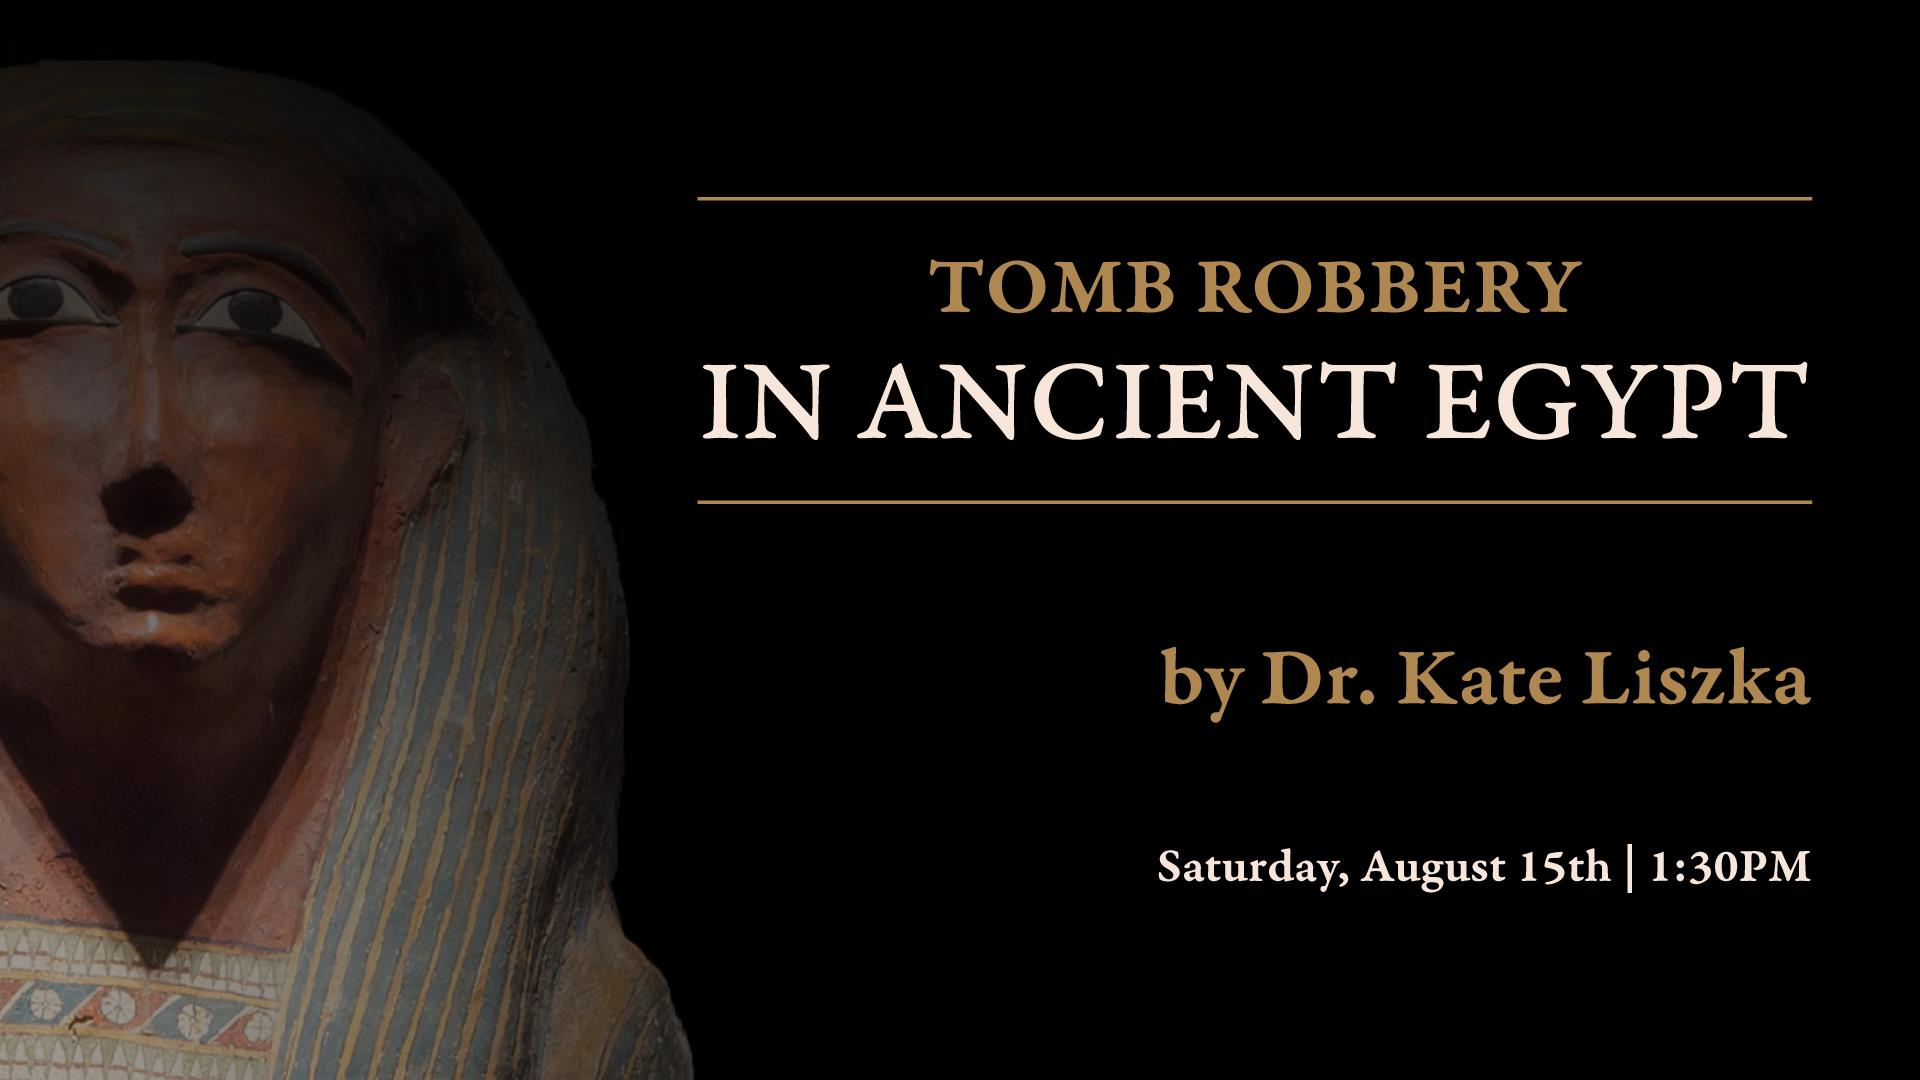 Tomb Robbery Lecture